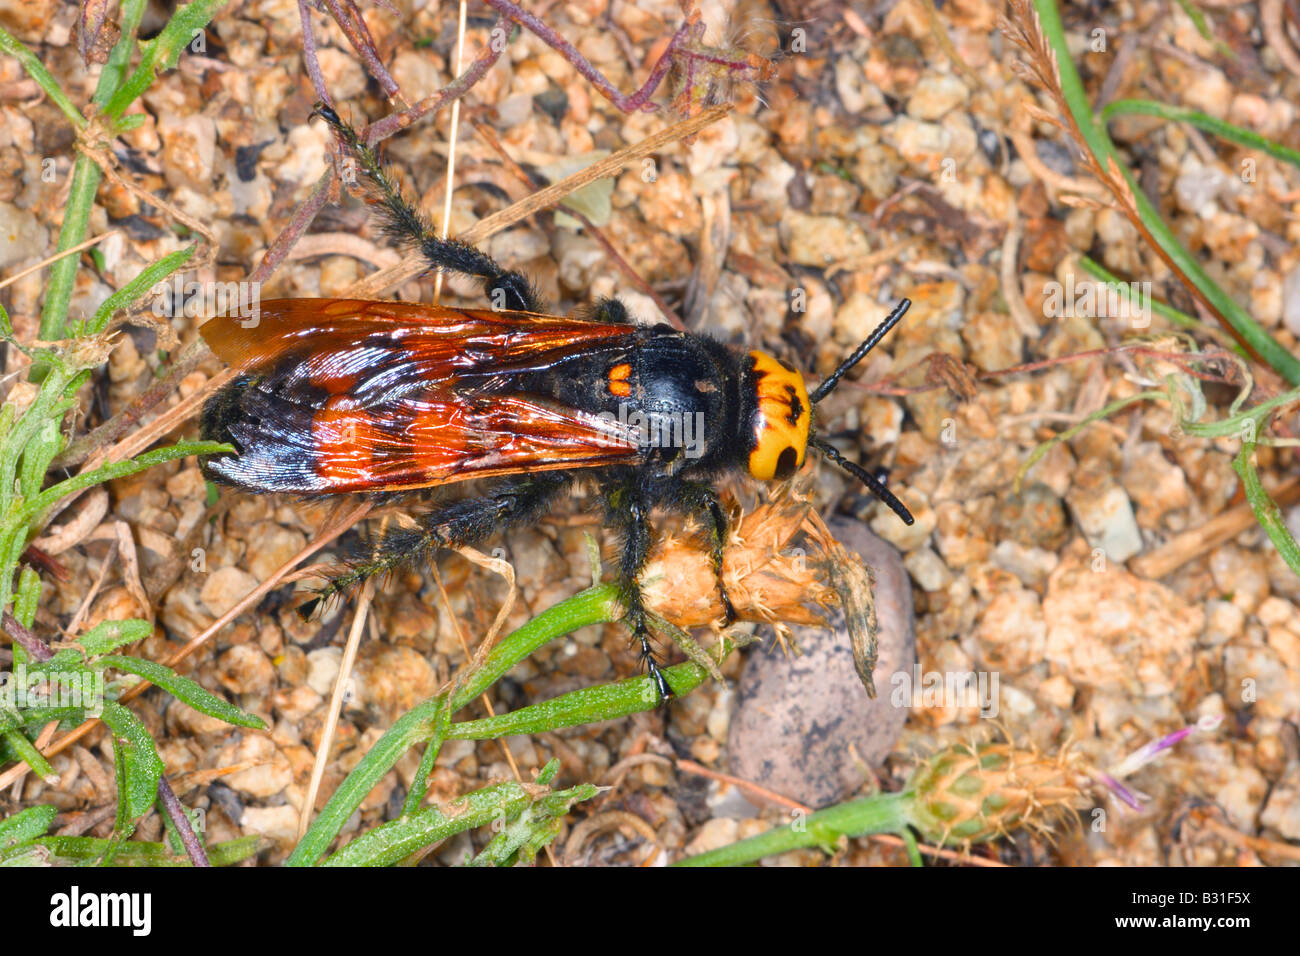 Mammoth Wasp, Megascolia maculata. Female on ground. Top view - Stock Image